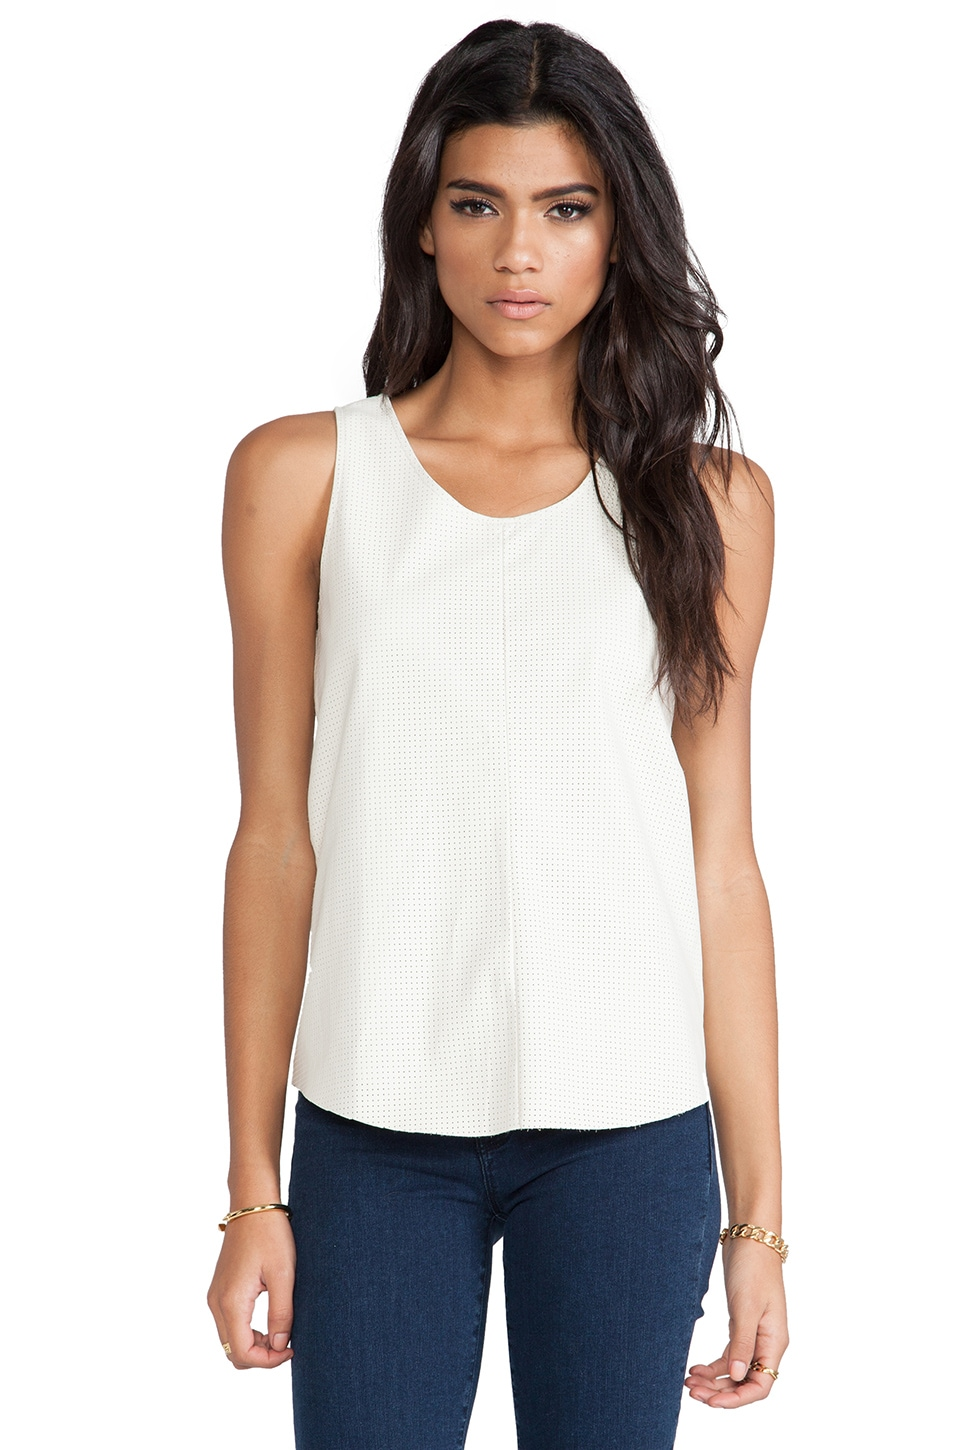 TOWNSEN Rookie Top in Cream